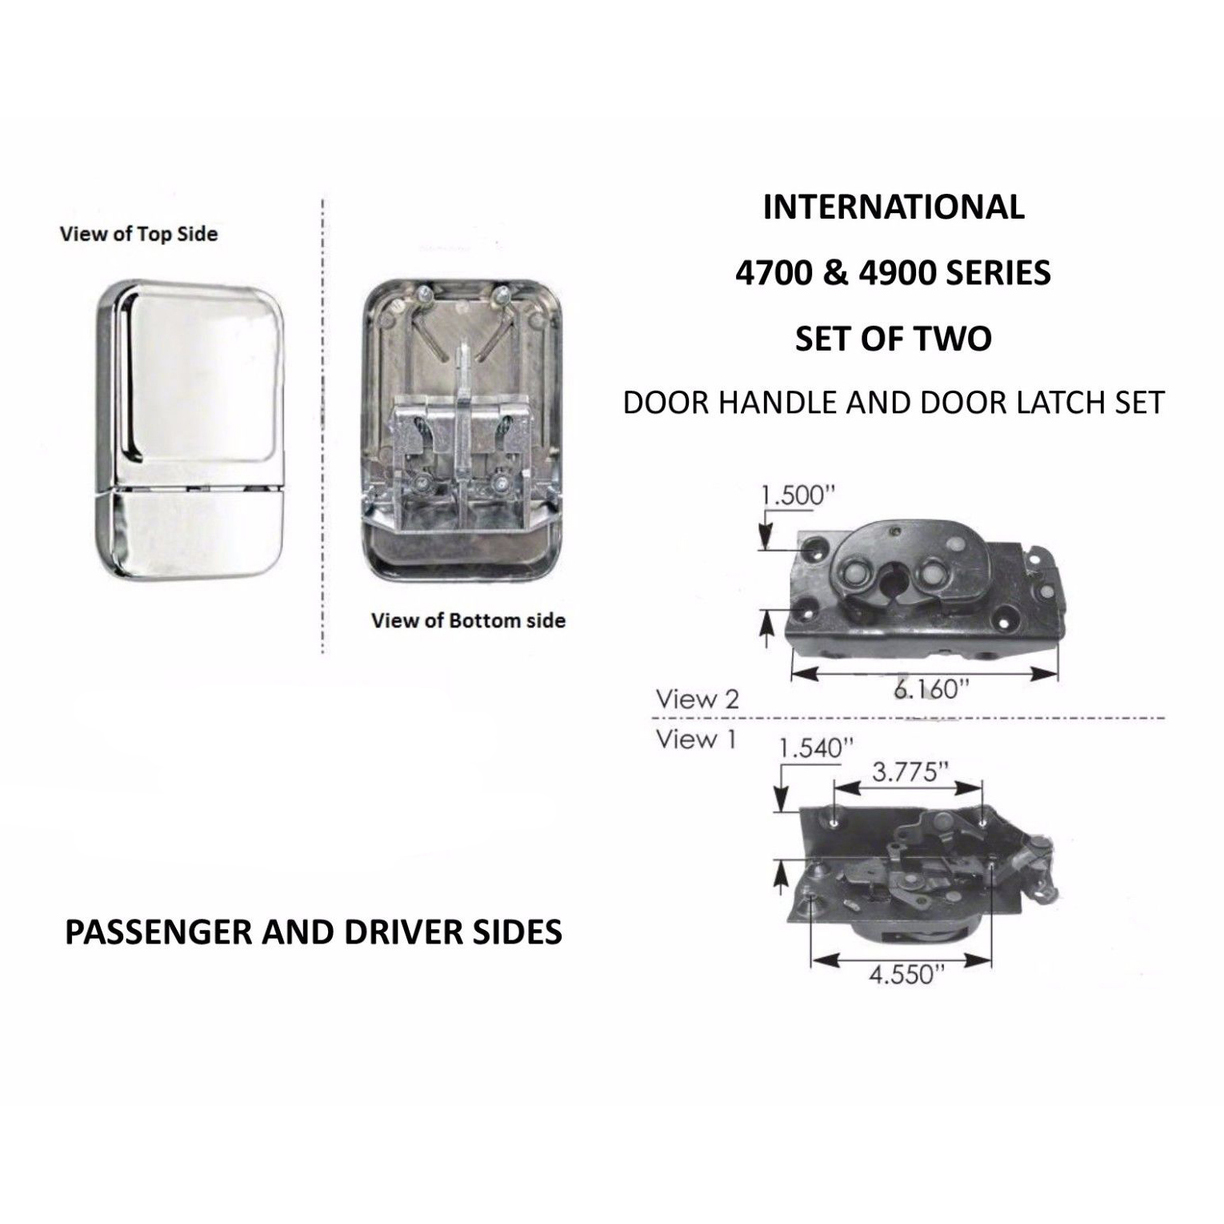 Door Handle Latch Set For International 4700 4900 Series 2001 Engine Diagram